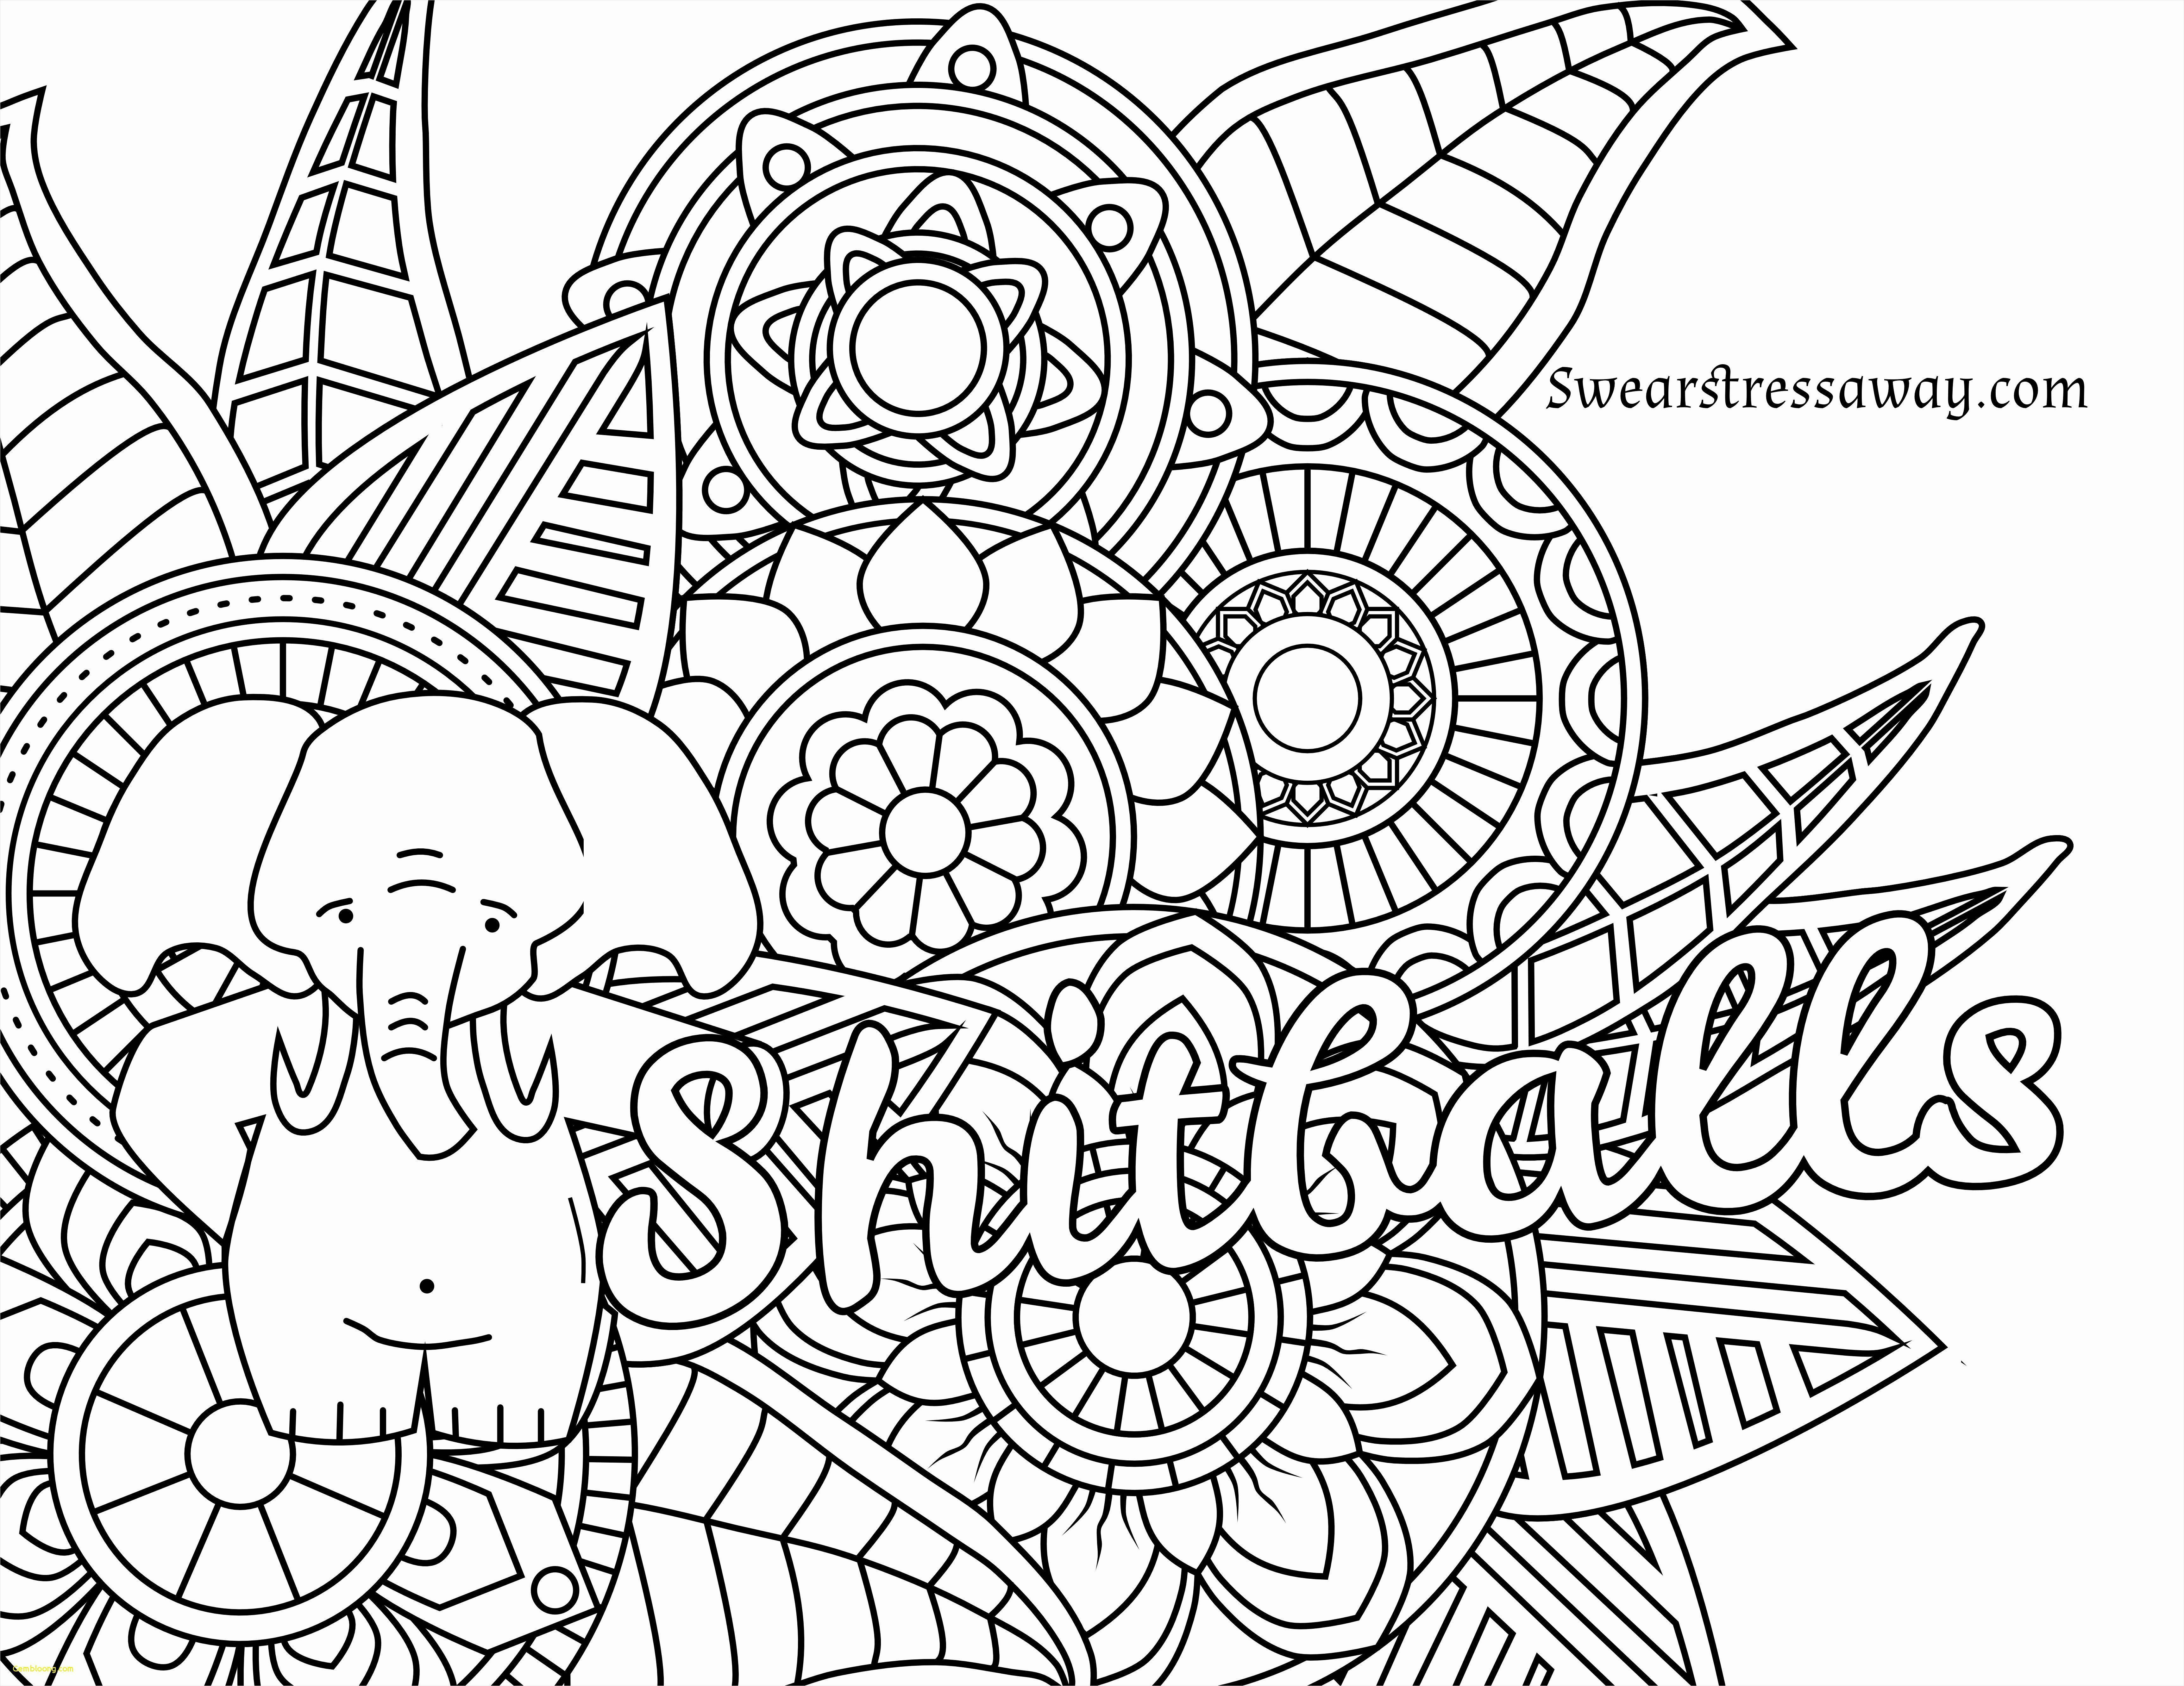 New Adult Coloring Pages Swear Words | Jvzooreview - Swear Word Coloring Pages Printable Free